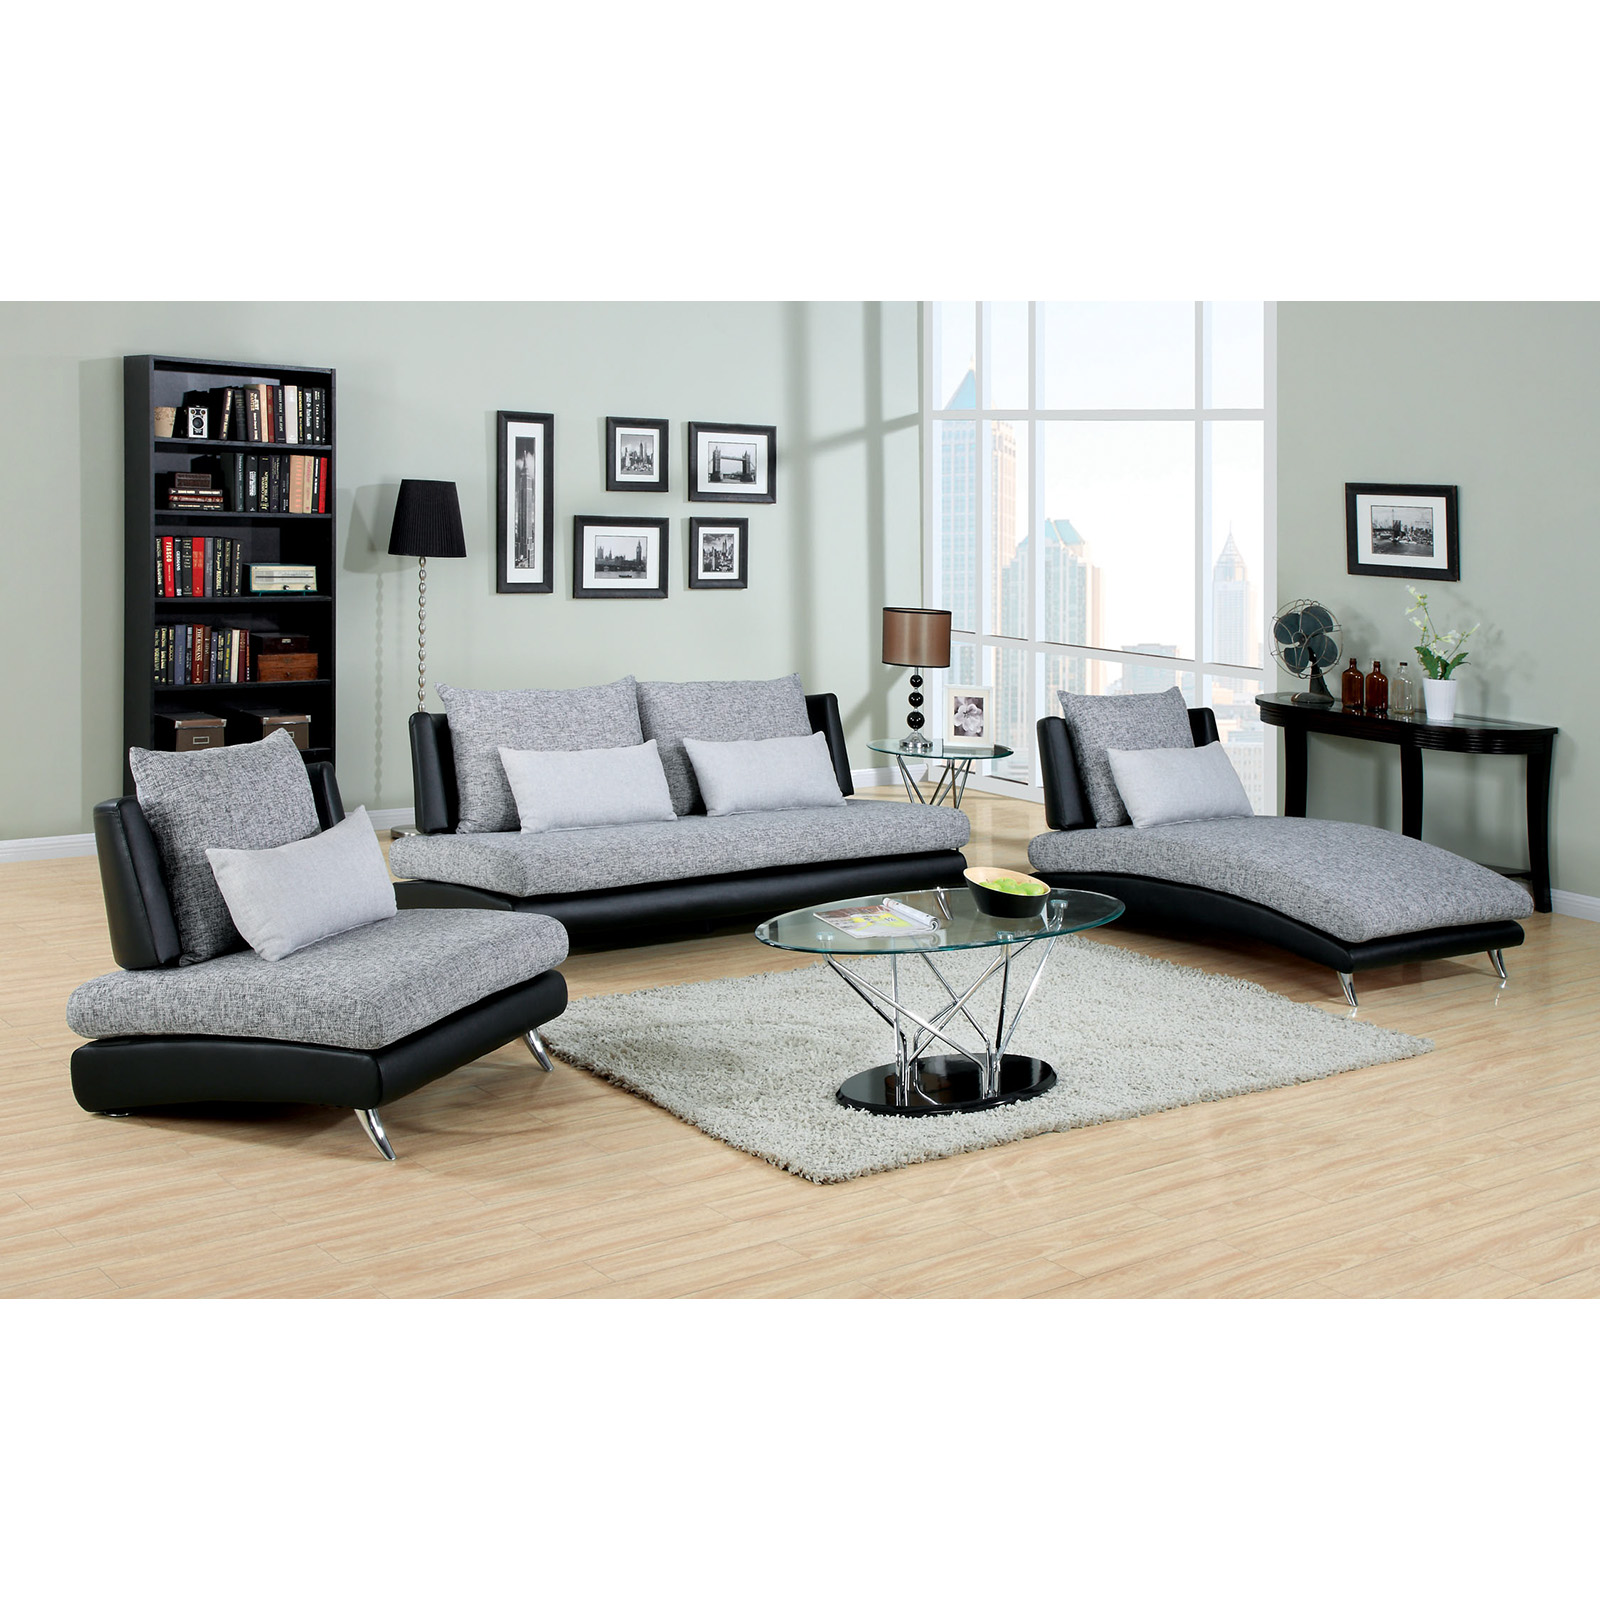 Furniture of America Cole 3 Piece Fabric and Faux Leather Sofa Set